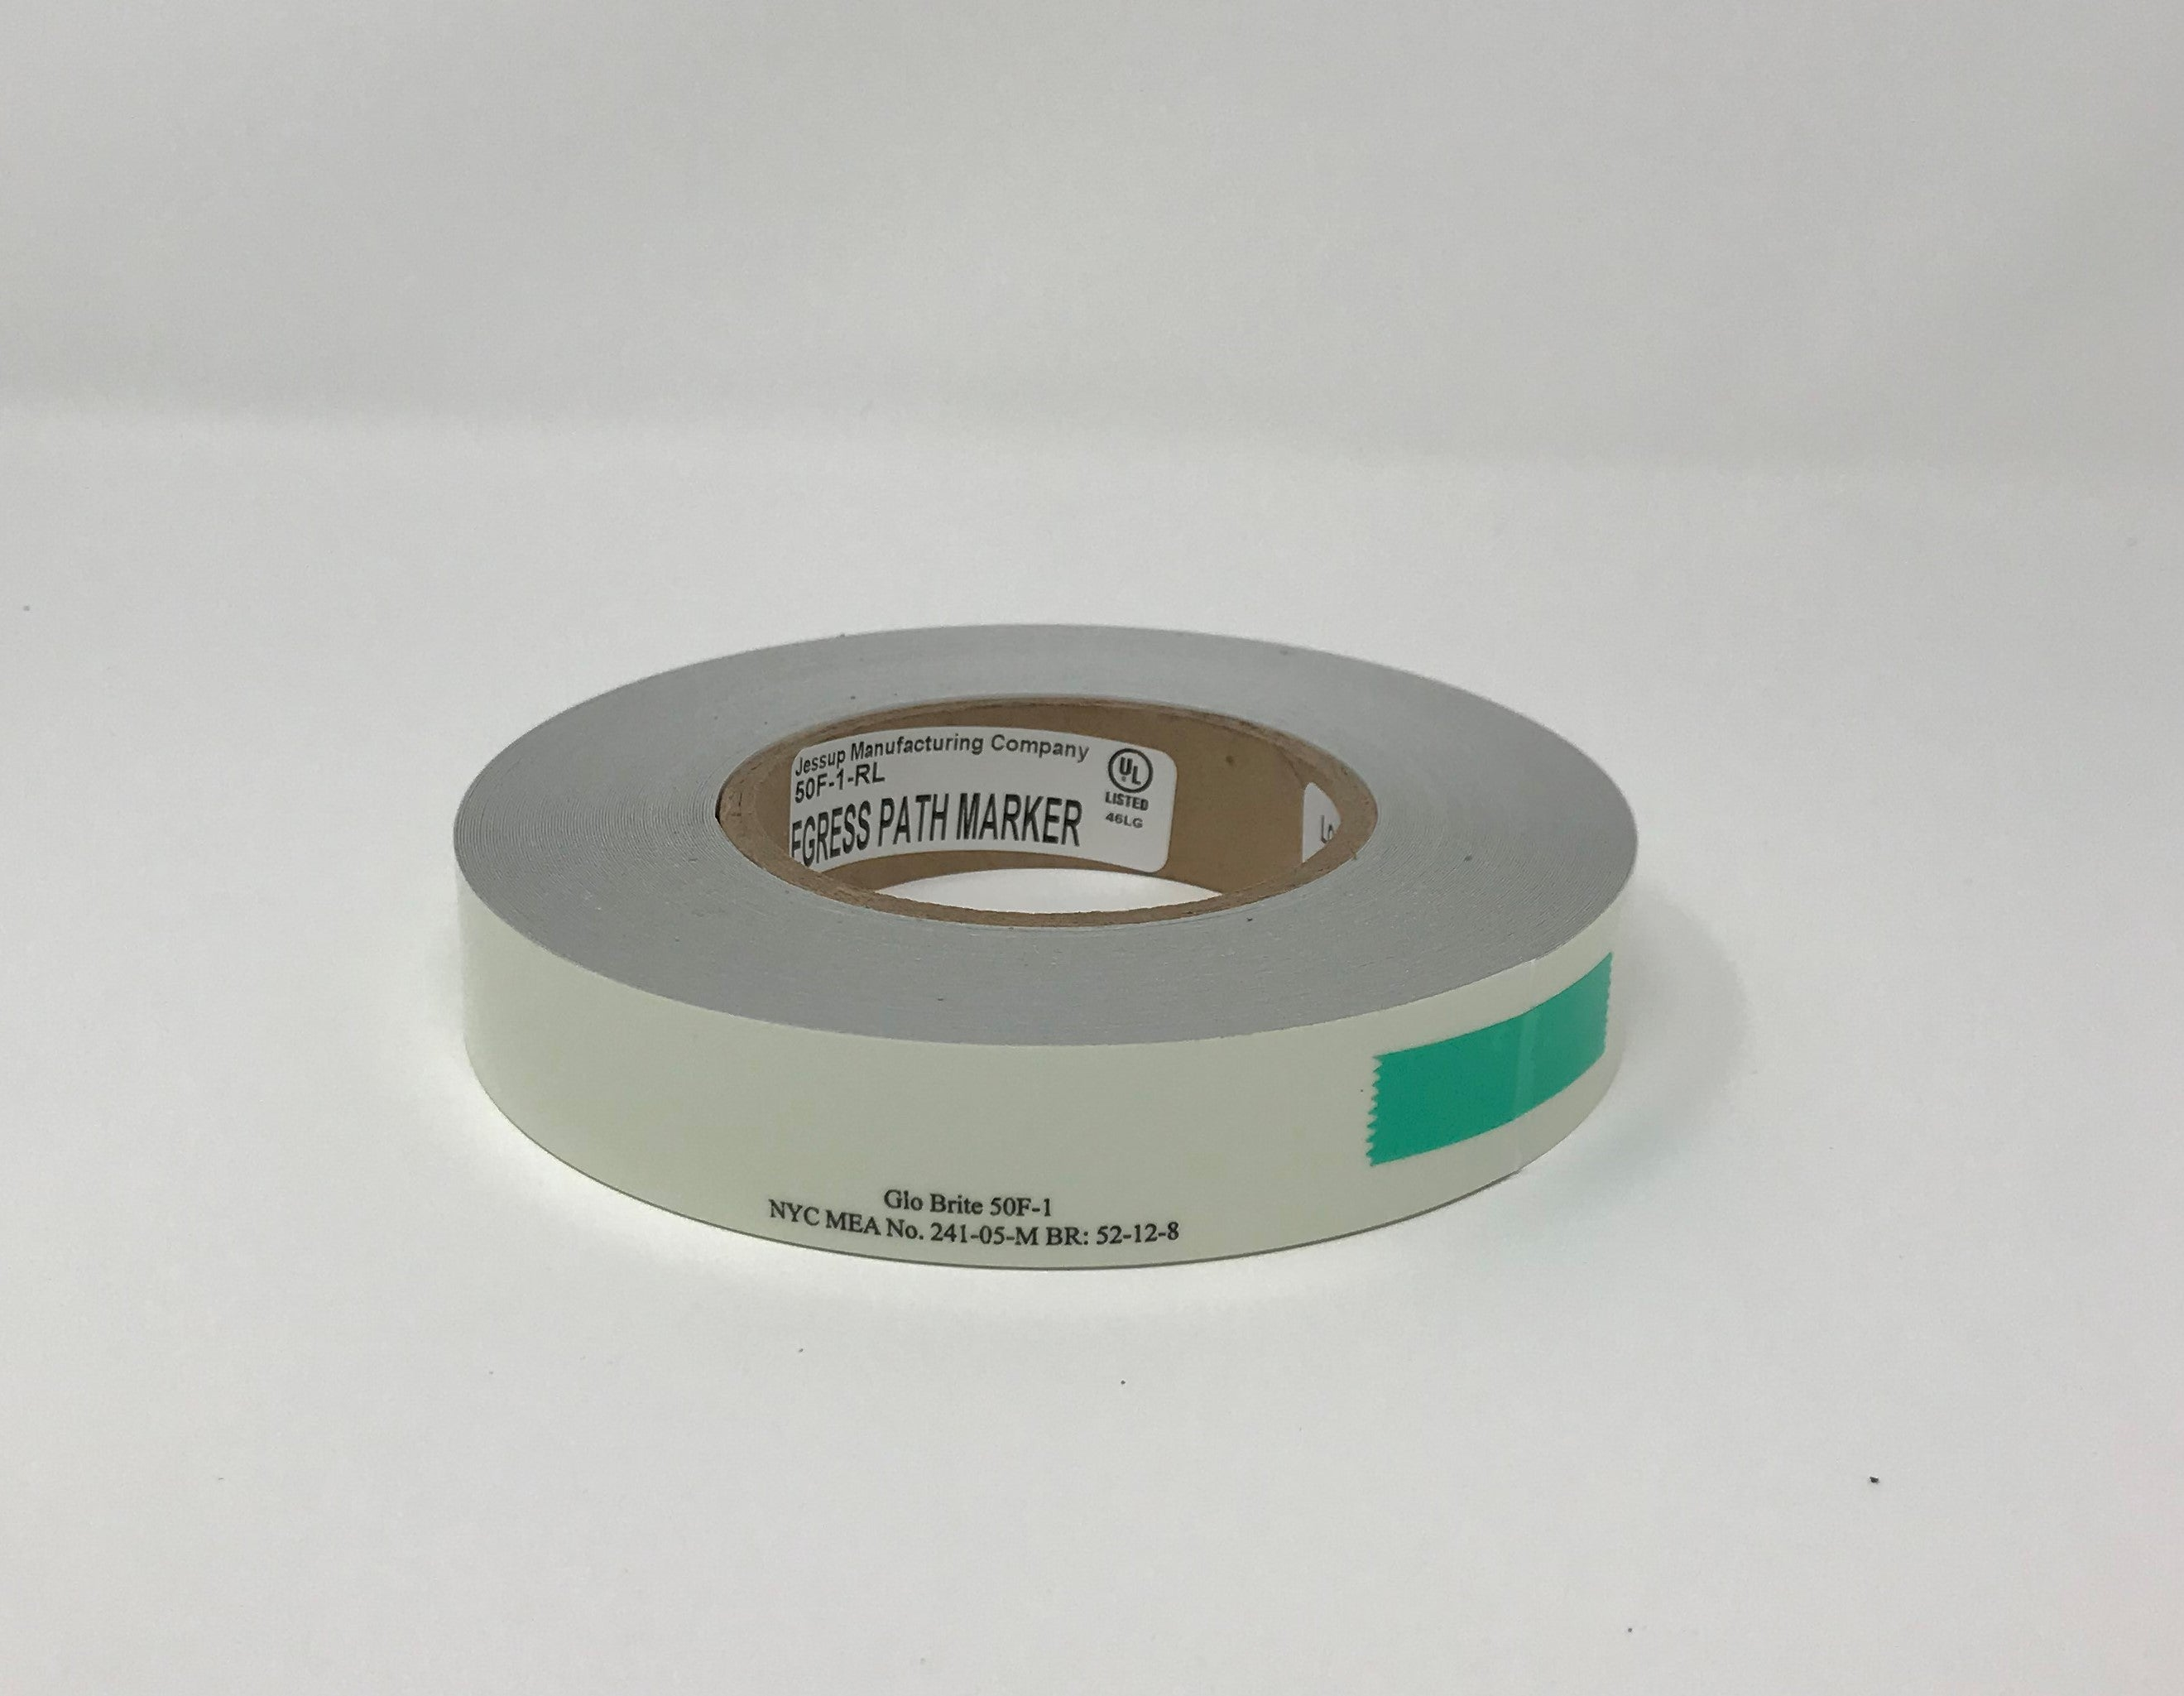 "1"" x 100' Roll GLOW IN THE DARK Emergency Egress Tape - Case of 12 - SPECIAL ORDER - NO RETURN"